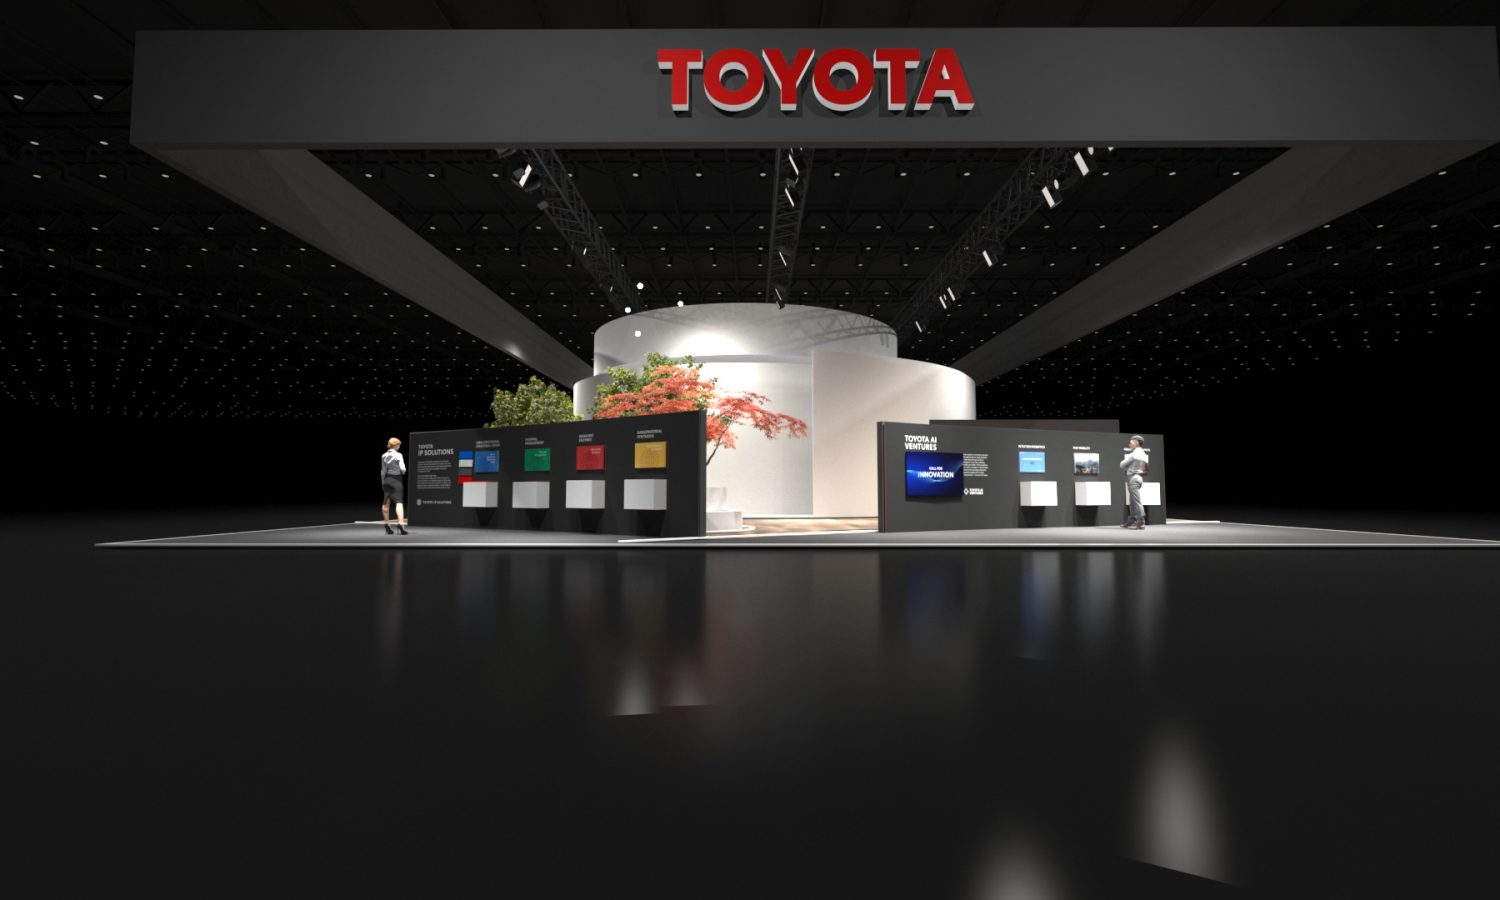 Toyota Provides Immersive Experience into the Woven City at CES 2020